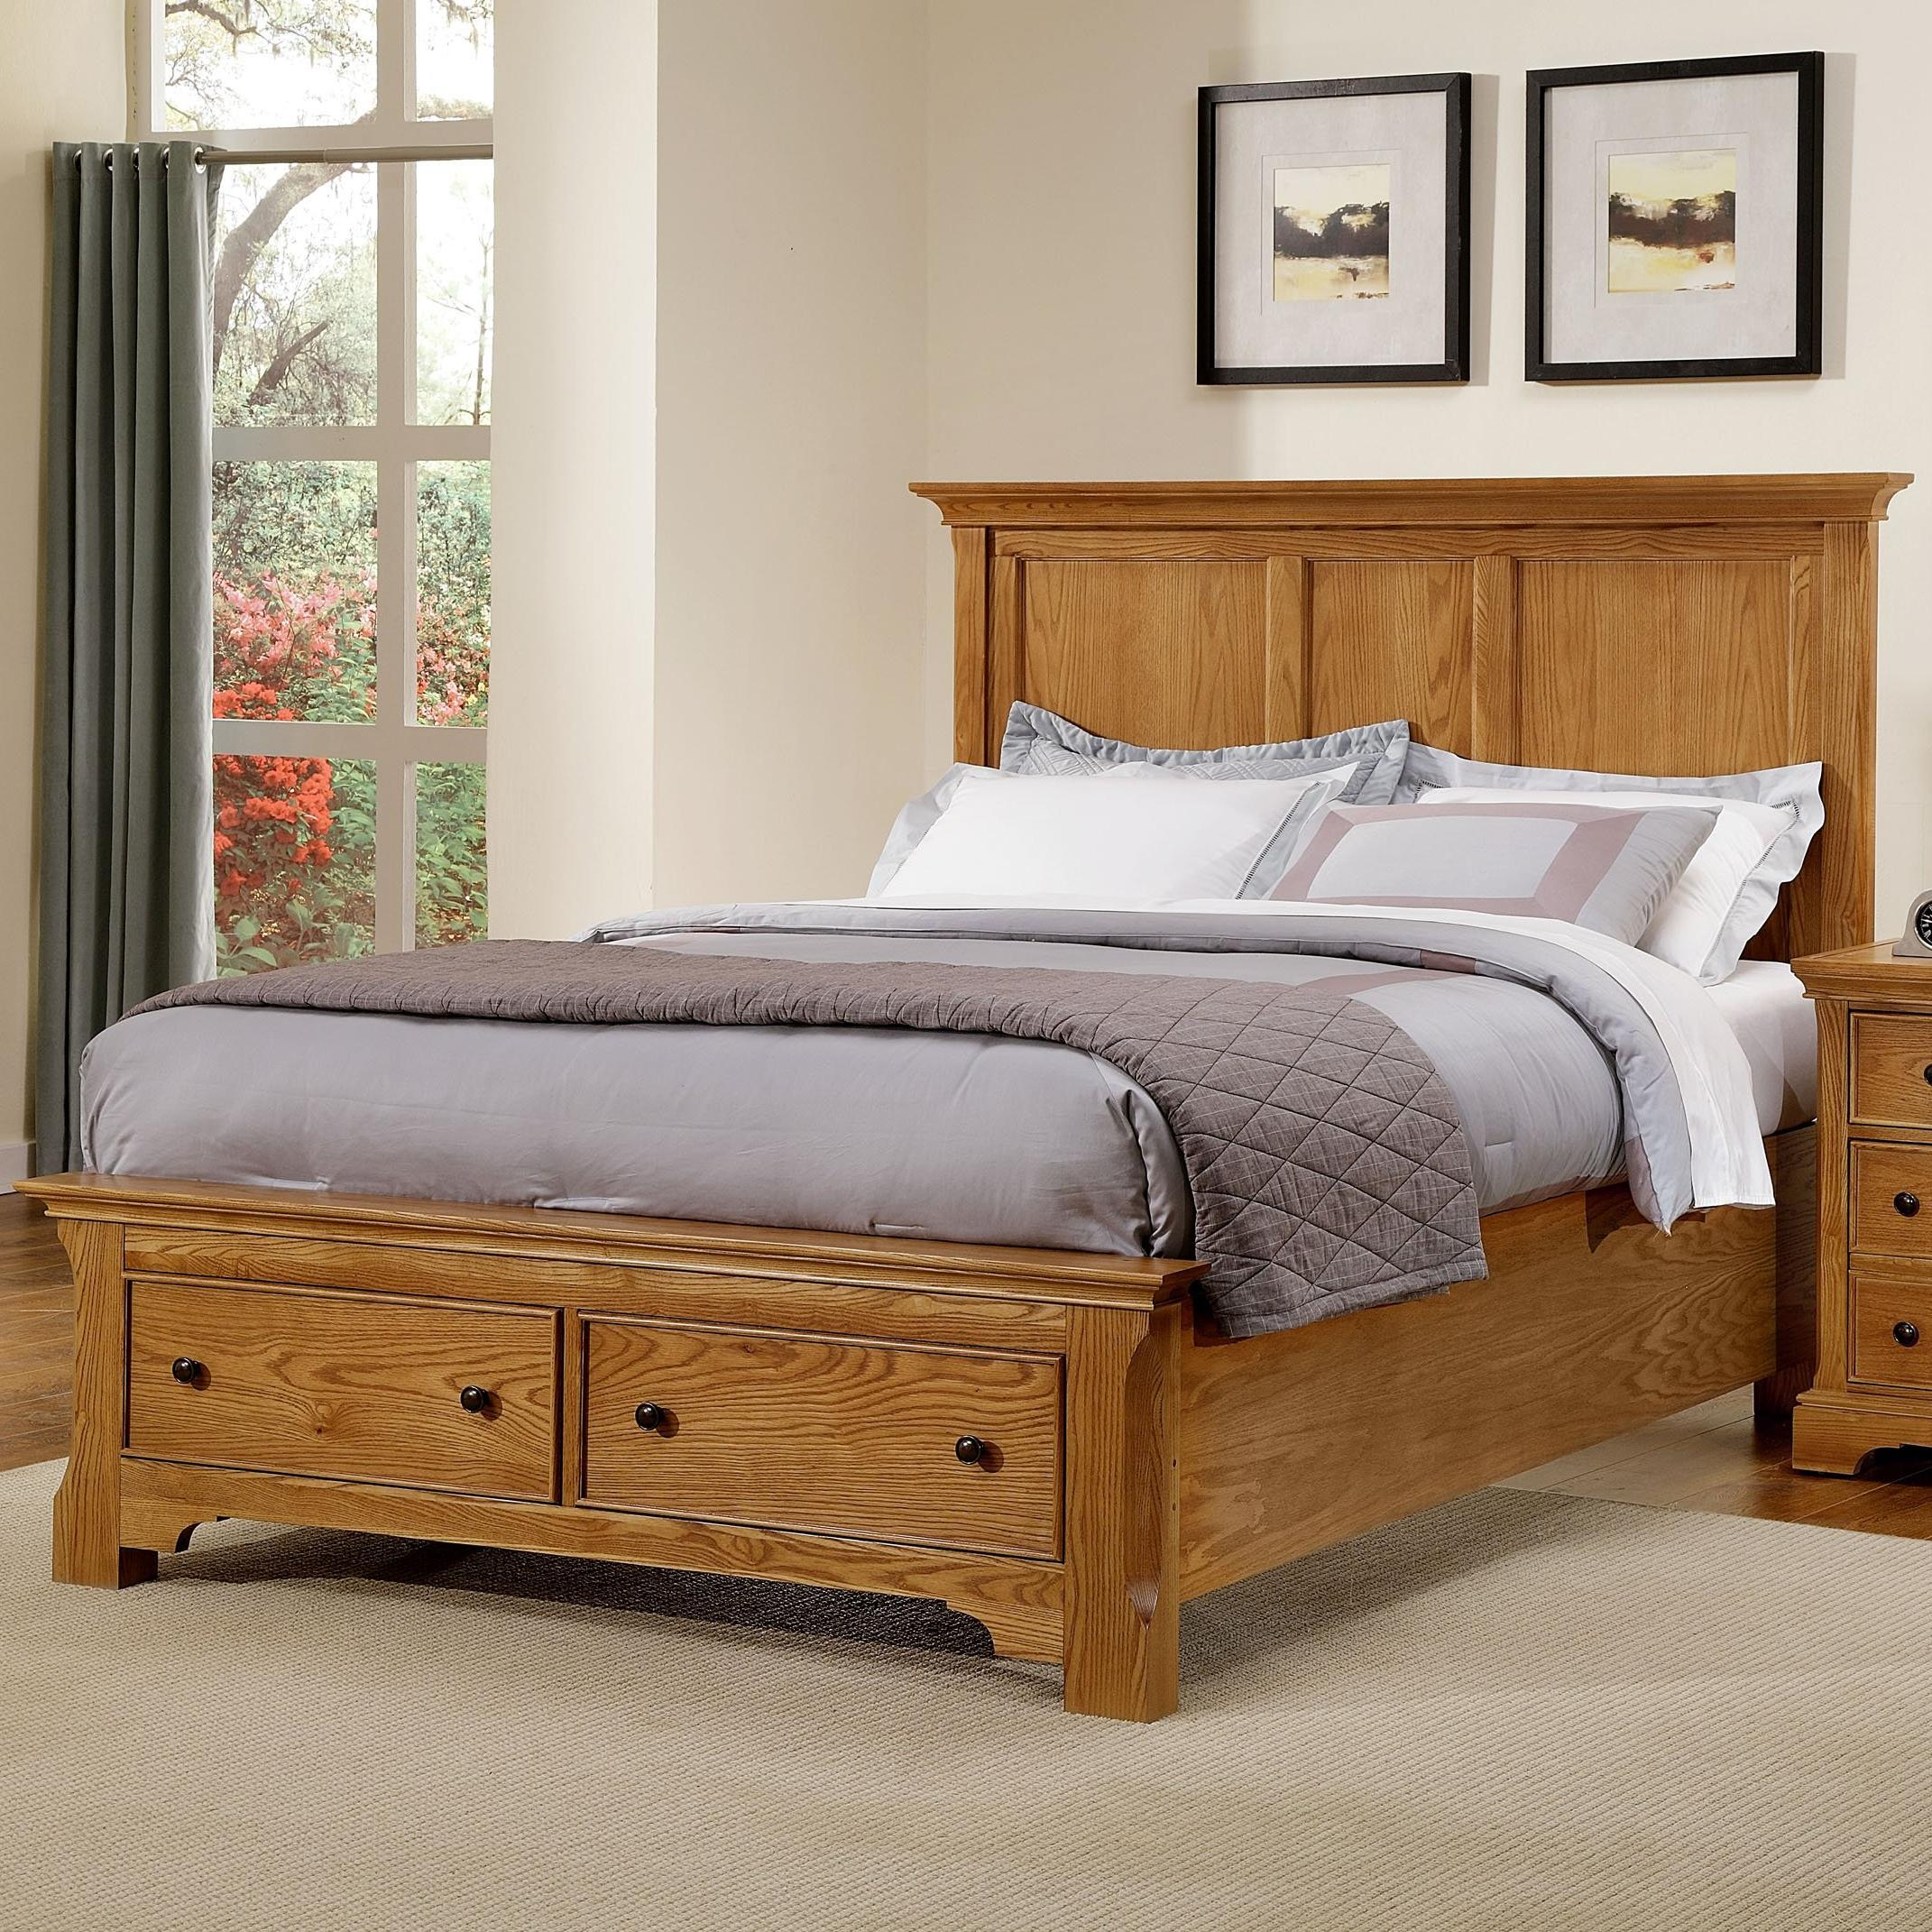 Vaughan Bassett Forsyth Queen Panel Storage Bed  - Item Number: BB75-558+050+501+555T